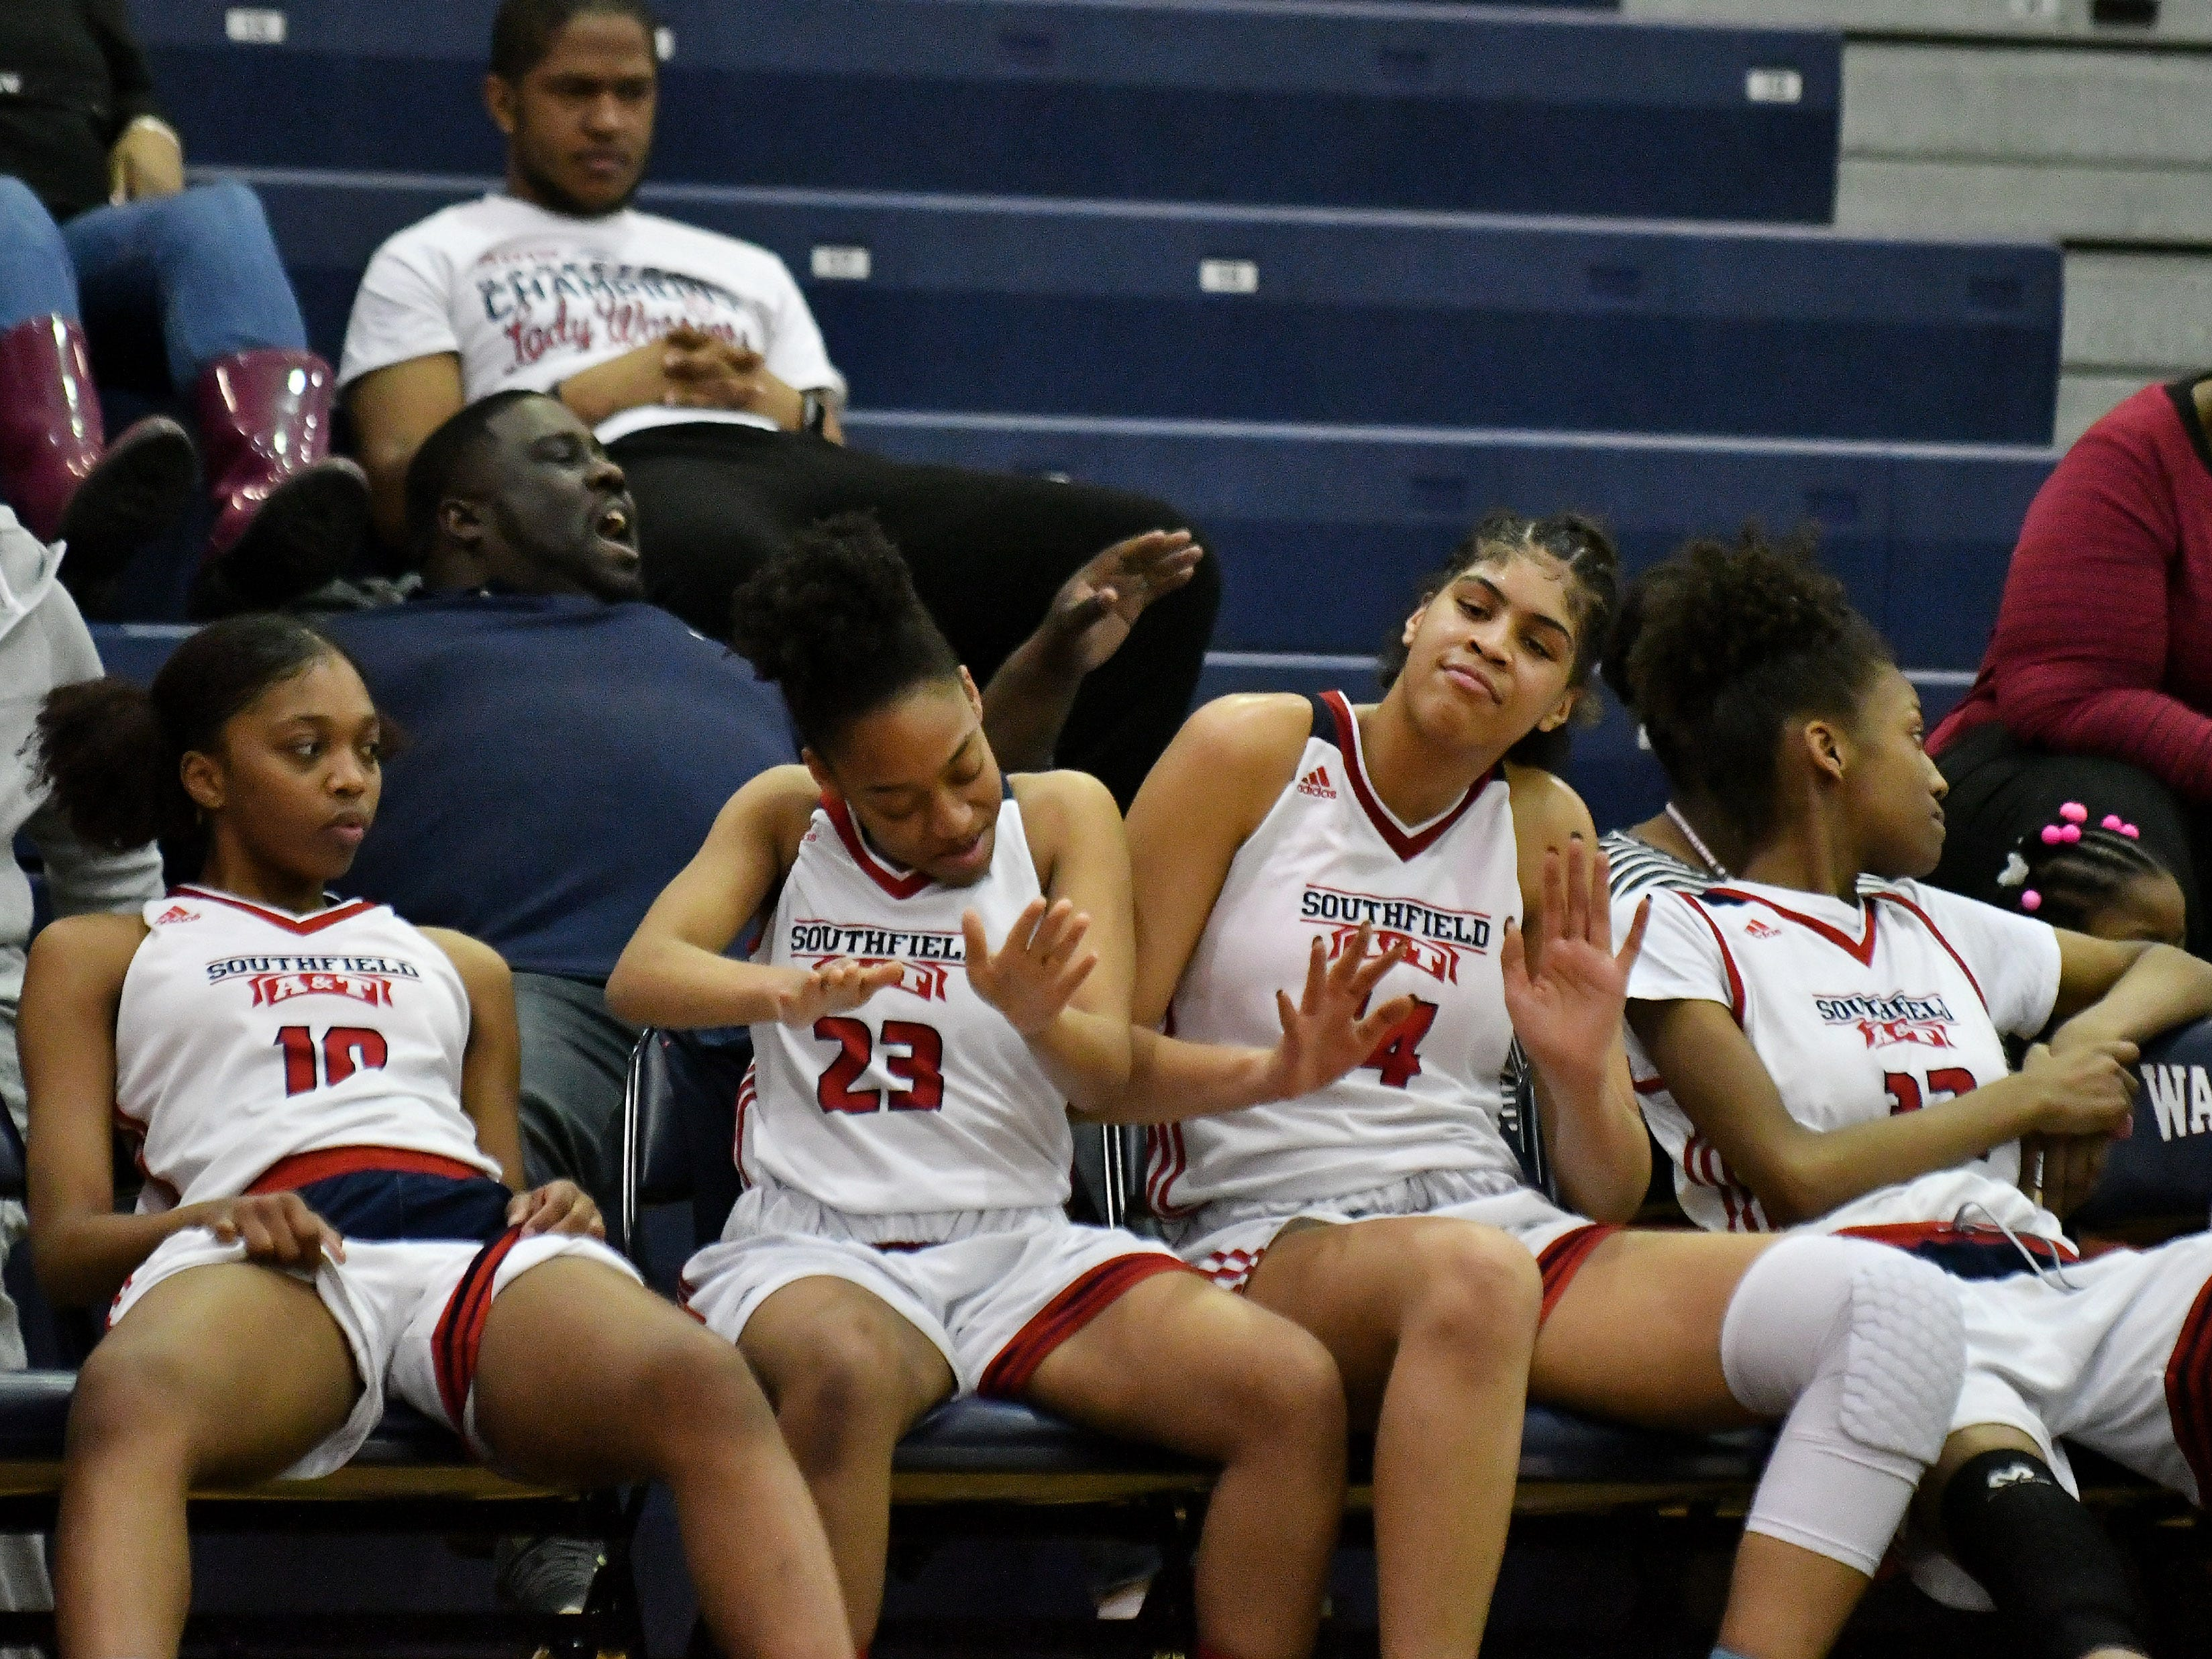 Southfield A&T's Rachel Hall (23) and Jasmine Worthy (14) do a little chair dancing on the bench in the second half.